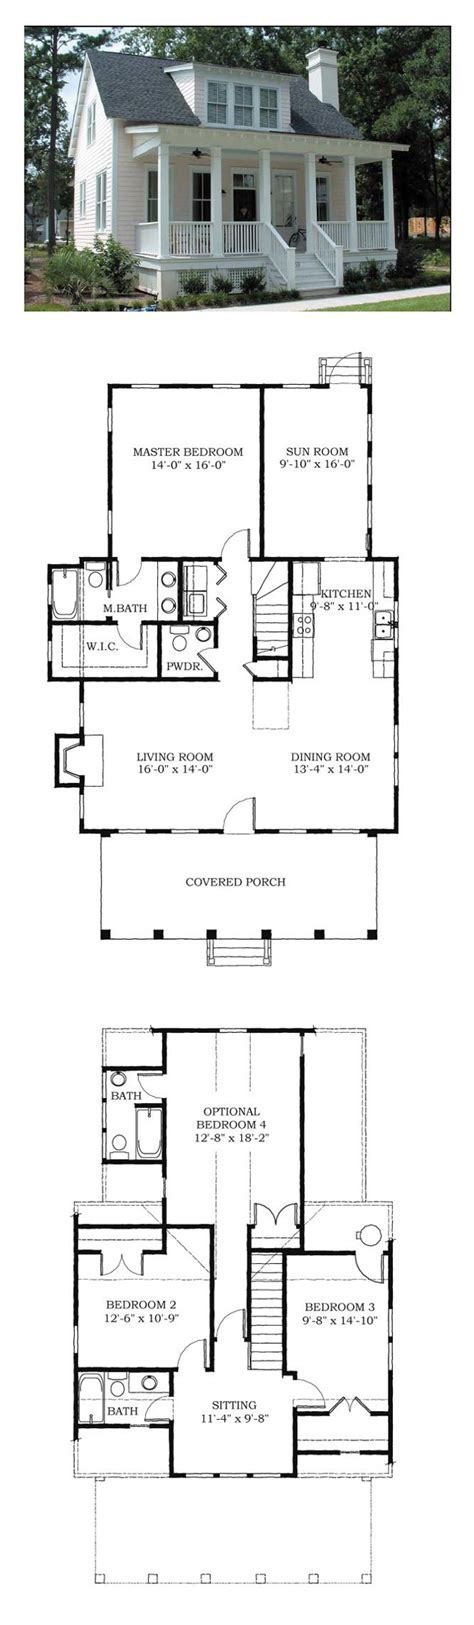 small floor plans for new homes 101 interior design ideas home bunch interior design ideas